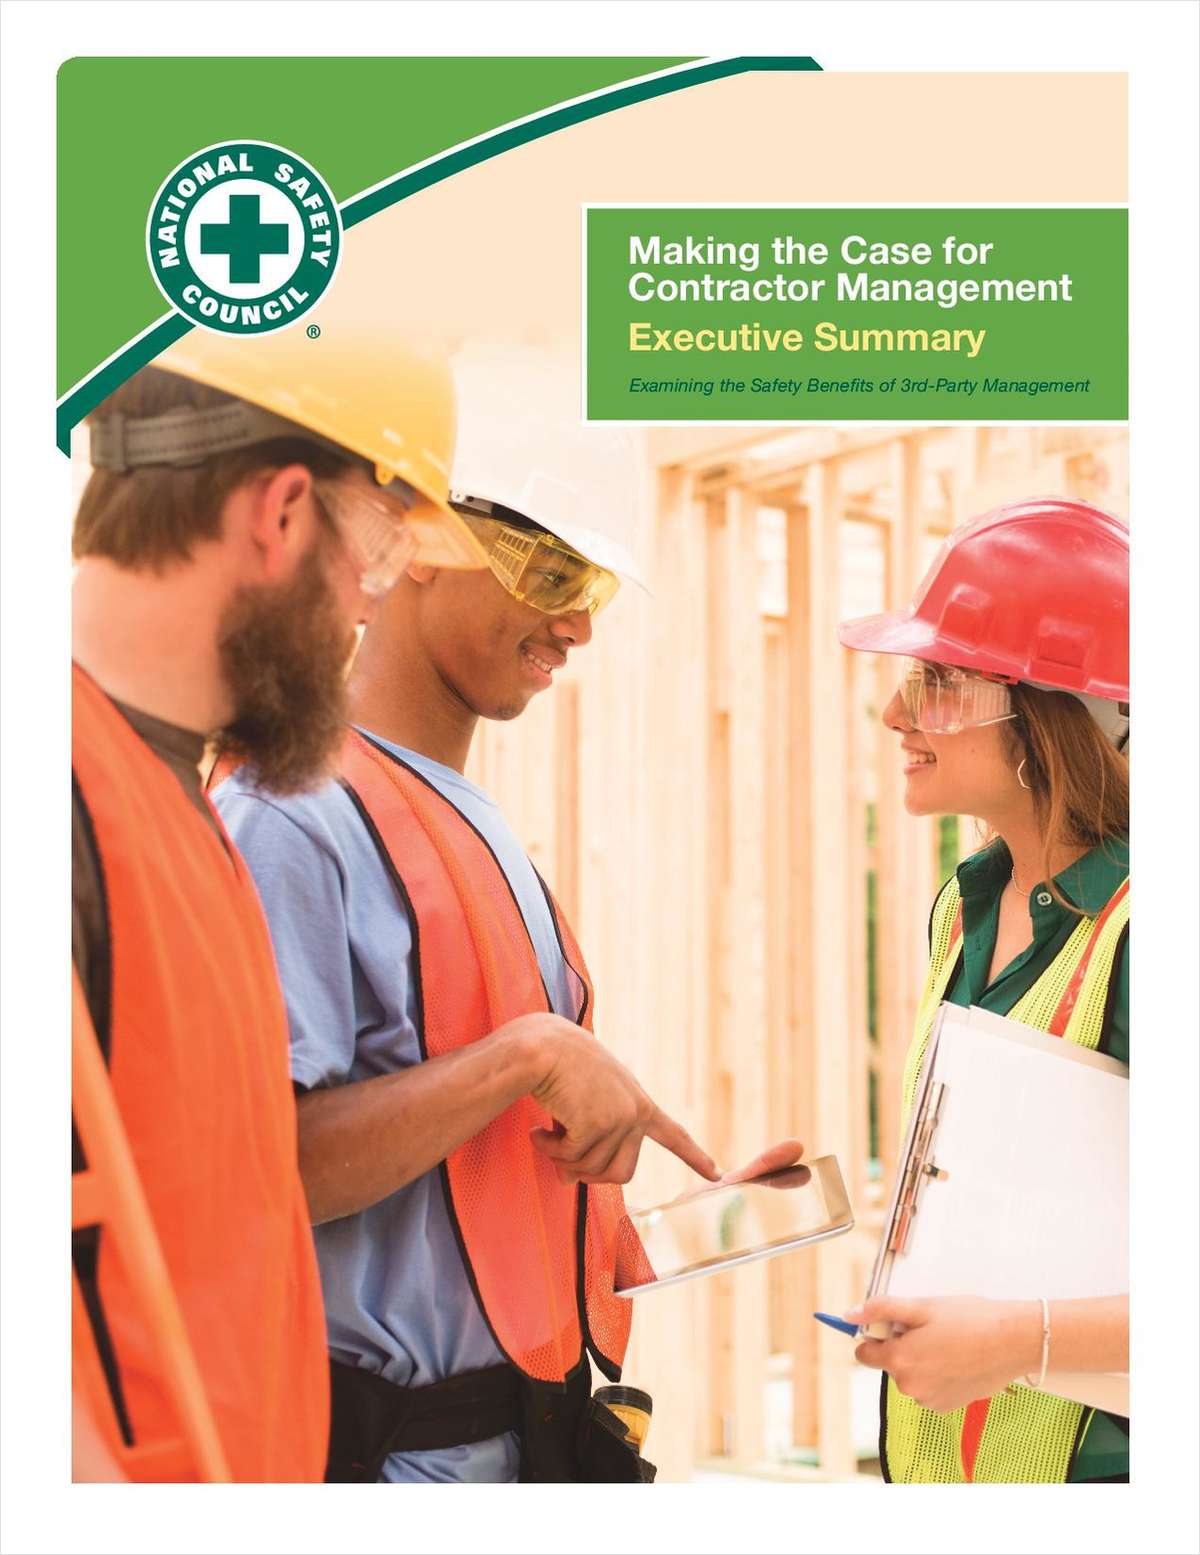 NSC Study: Making the Case for Contractor Management